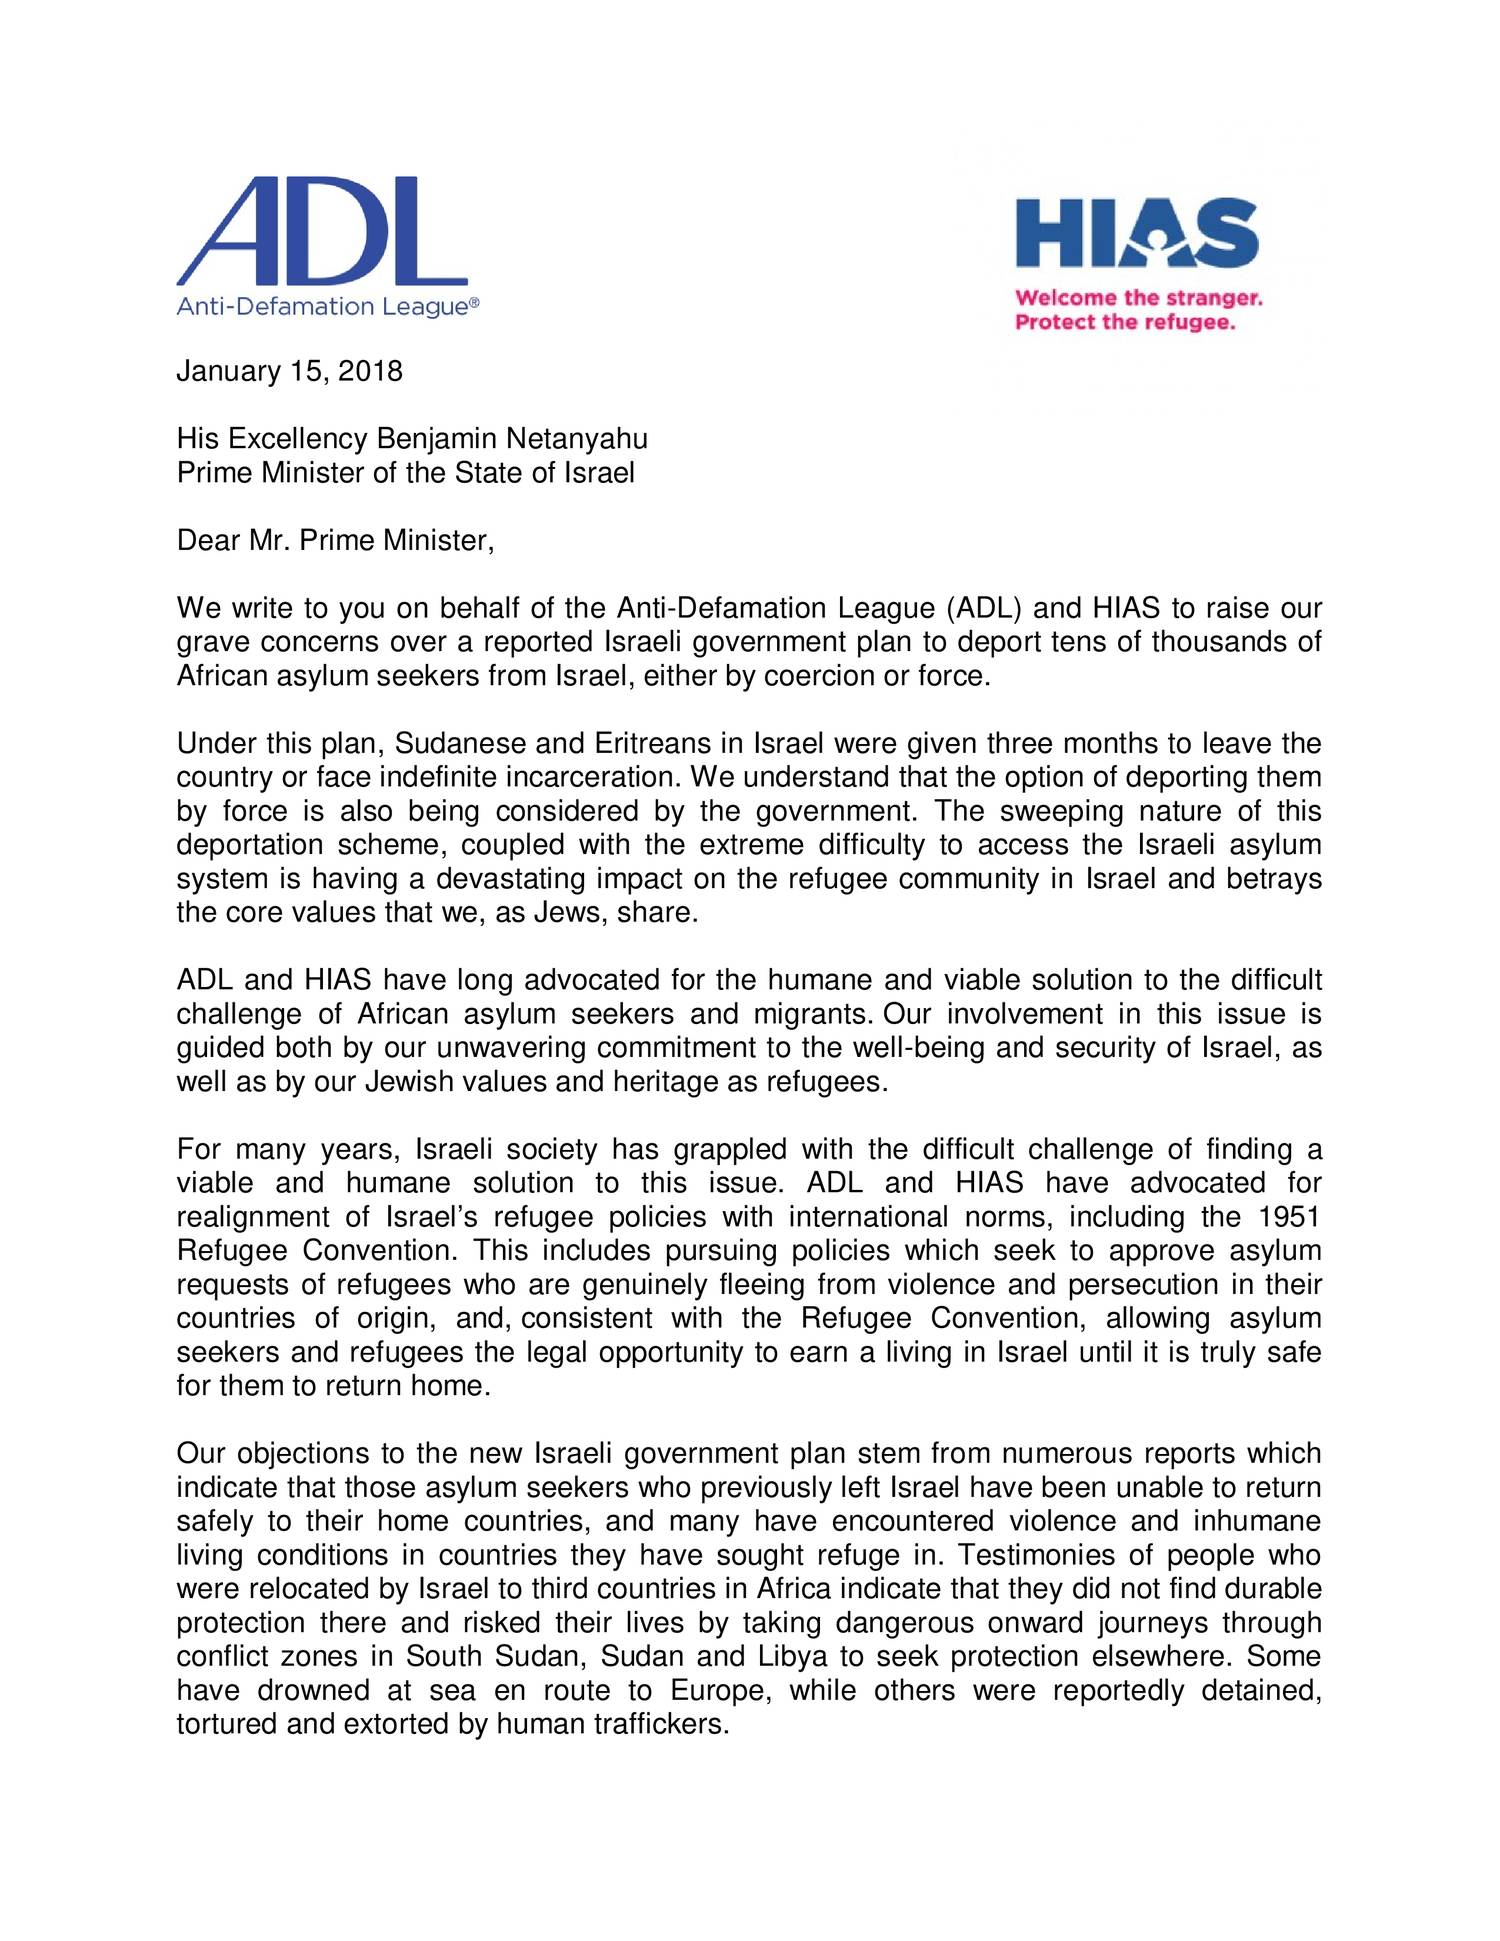 Adl and hias letter on asylum seekerspdf docdroid altavistaventures Image collections